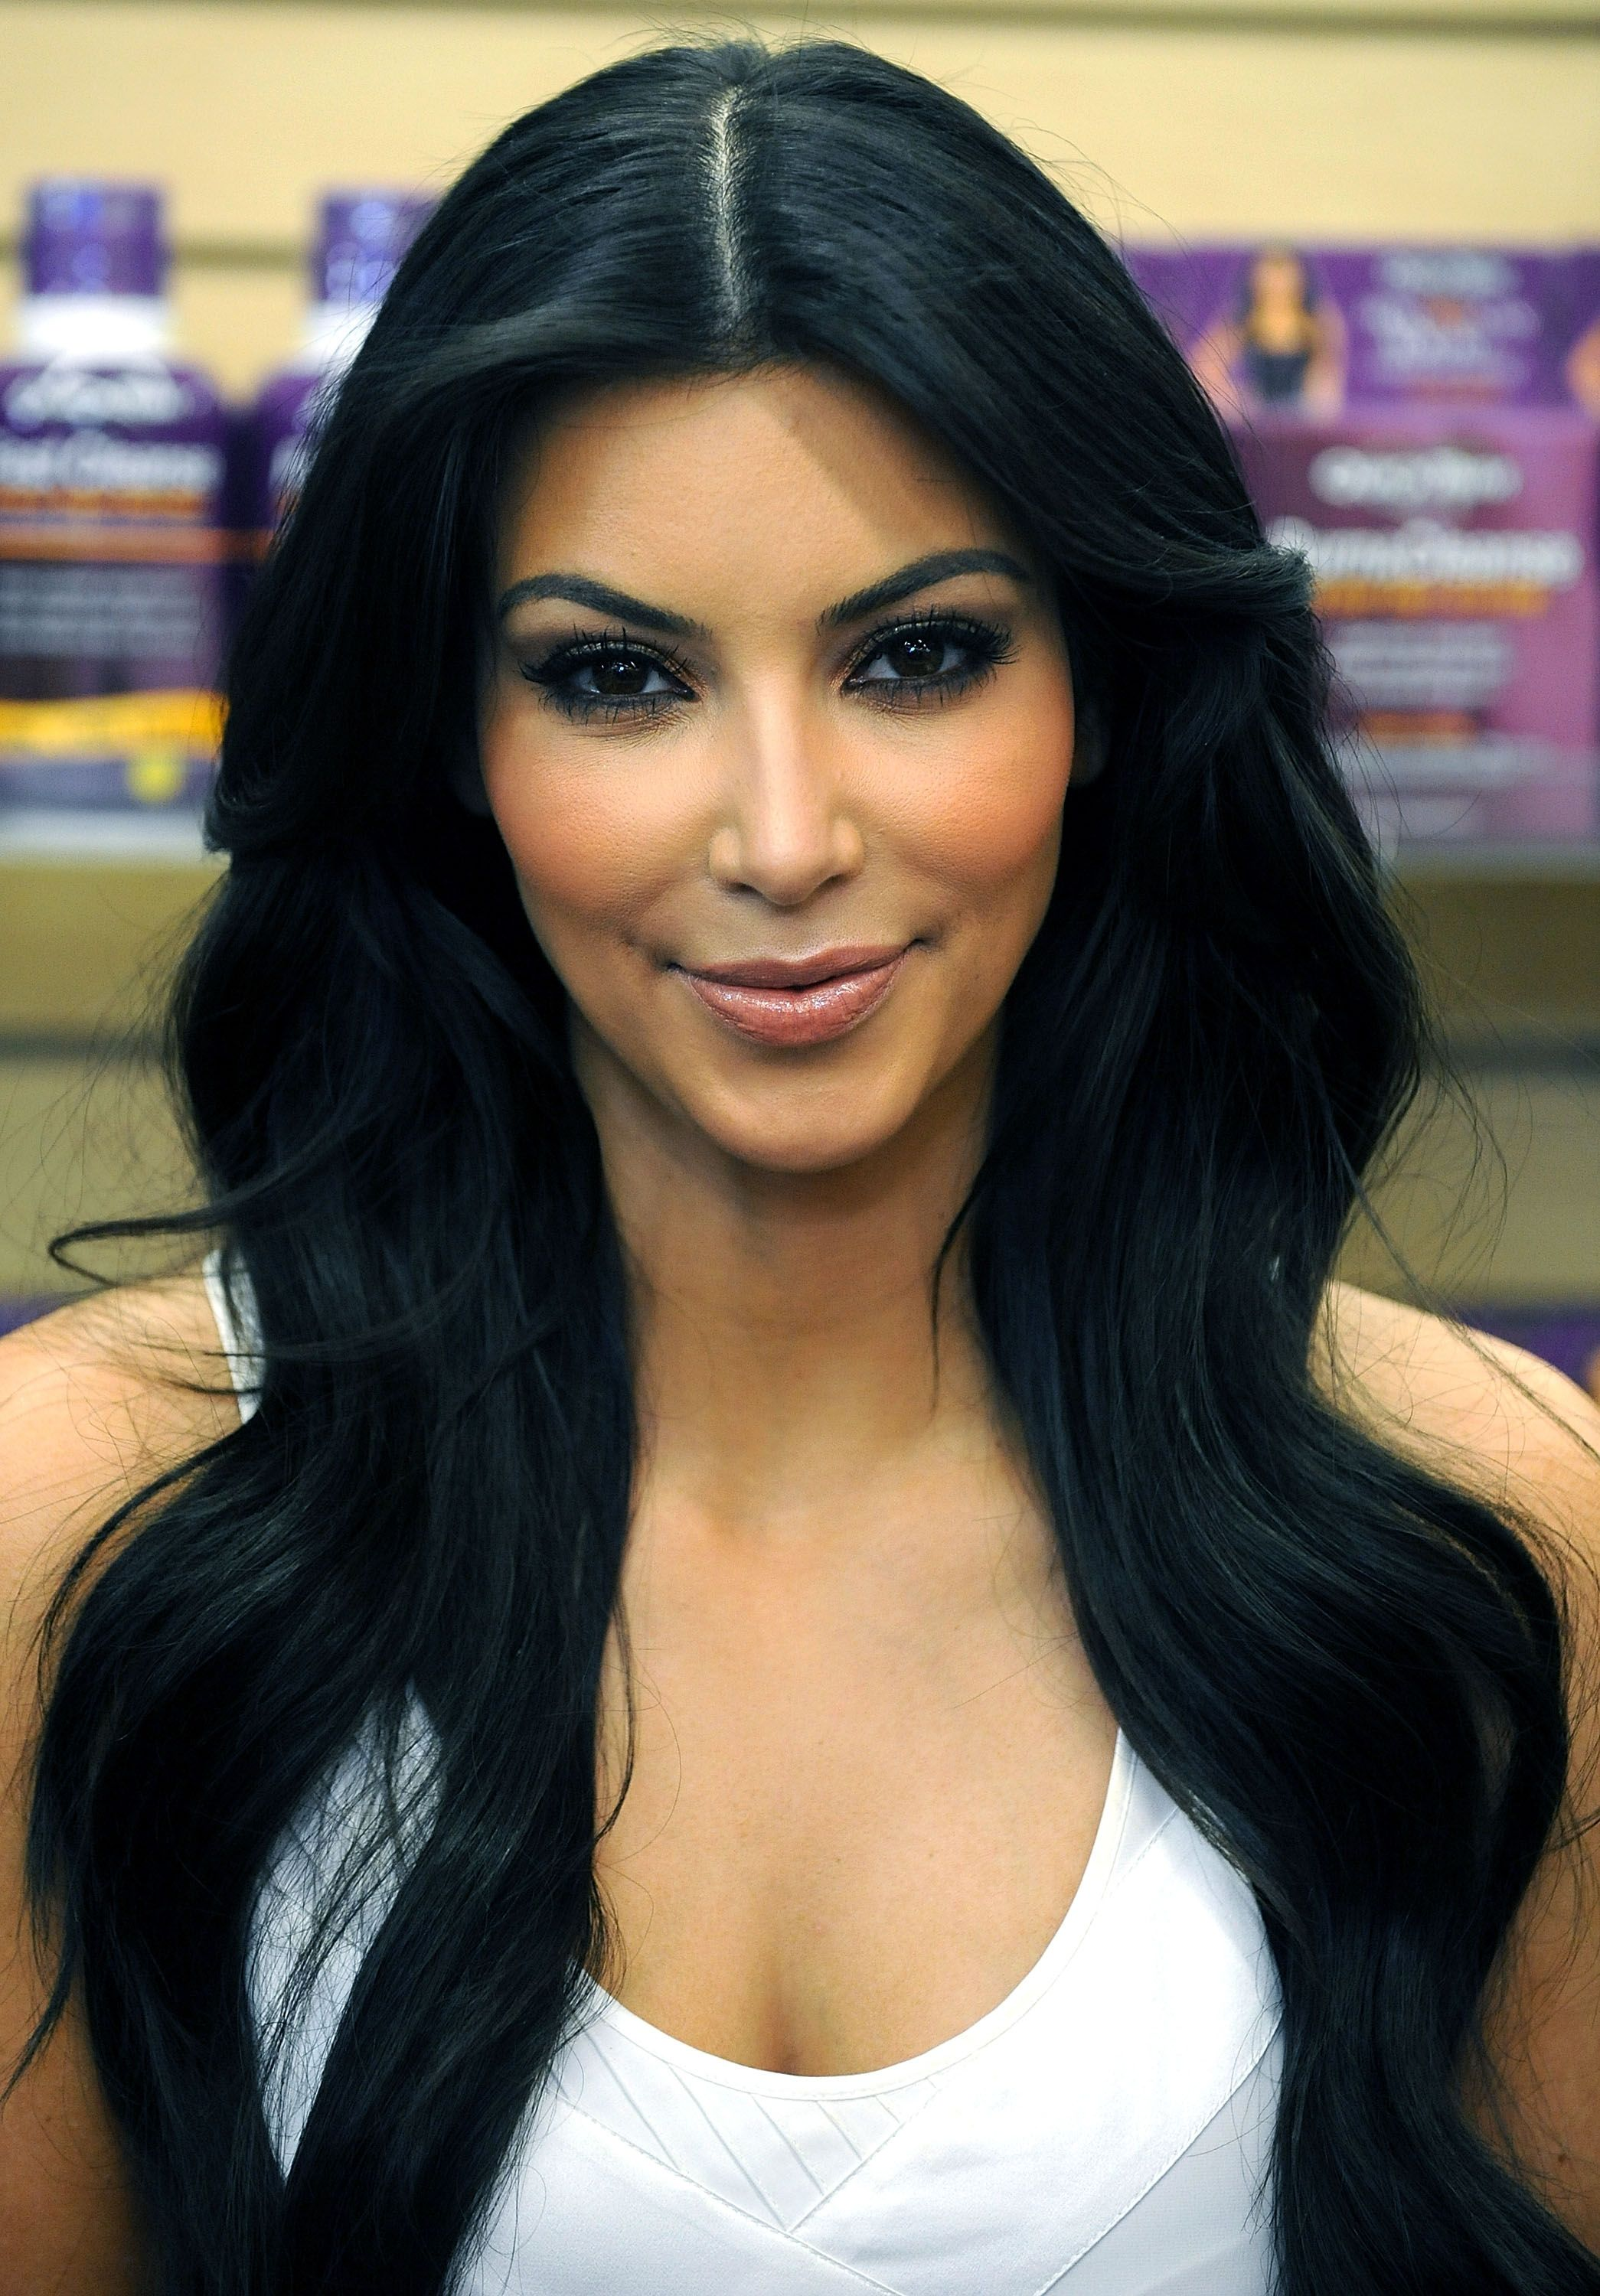 Pin By Gagan Bassi On Kim Kardashian Kardashian Hair Kim Kardashian Hair Black Hair Celebrities